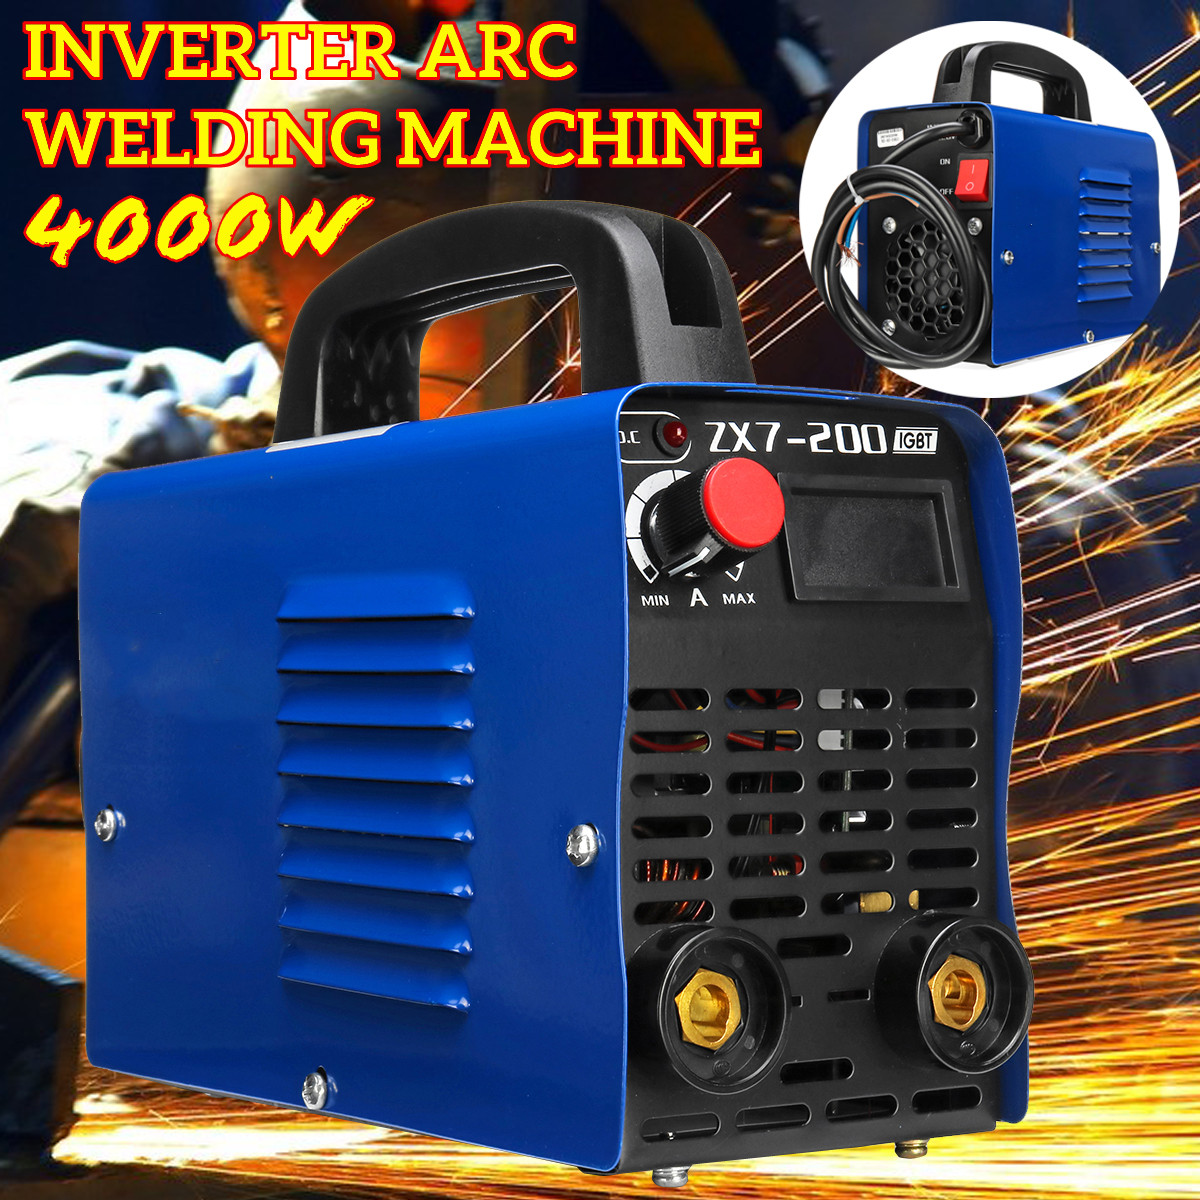 ZX7-200 220V Inverter Arc Welding Machine Fully Automatic Handheld Welding Tool LCD Display